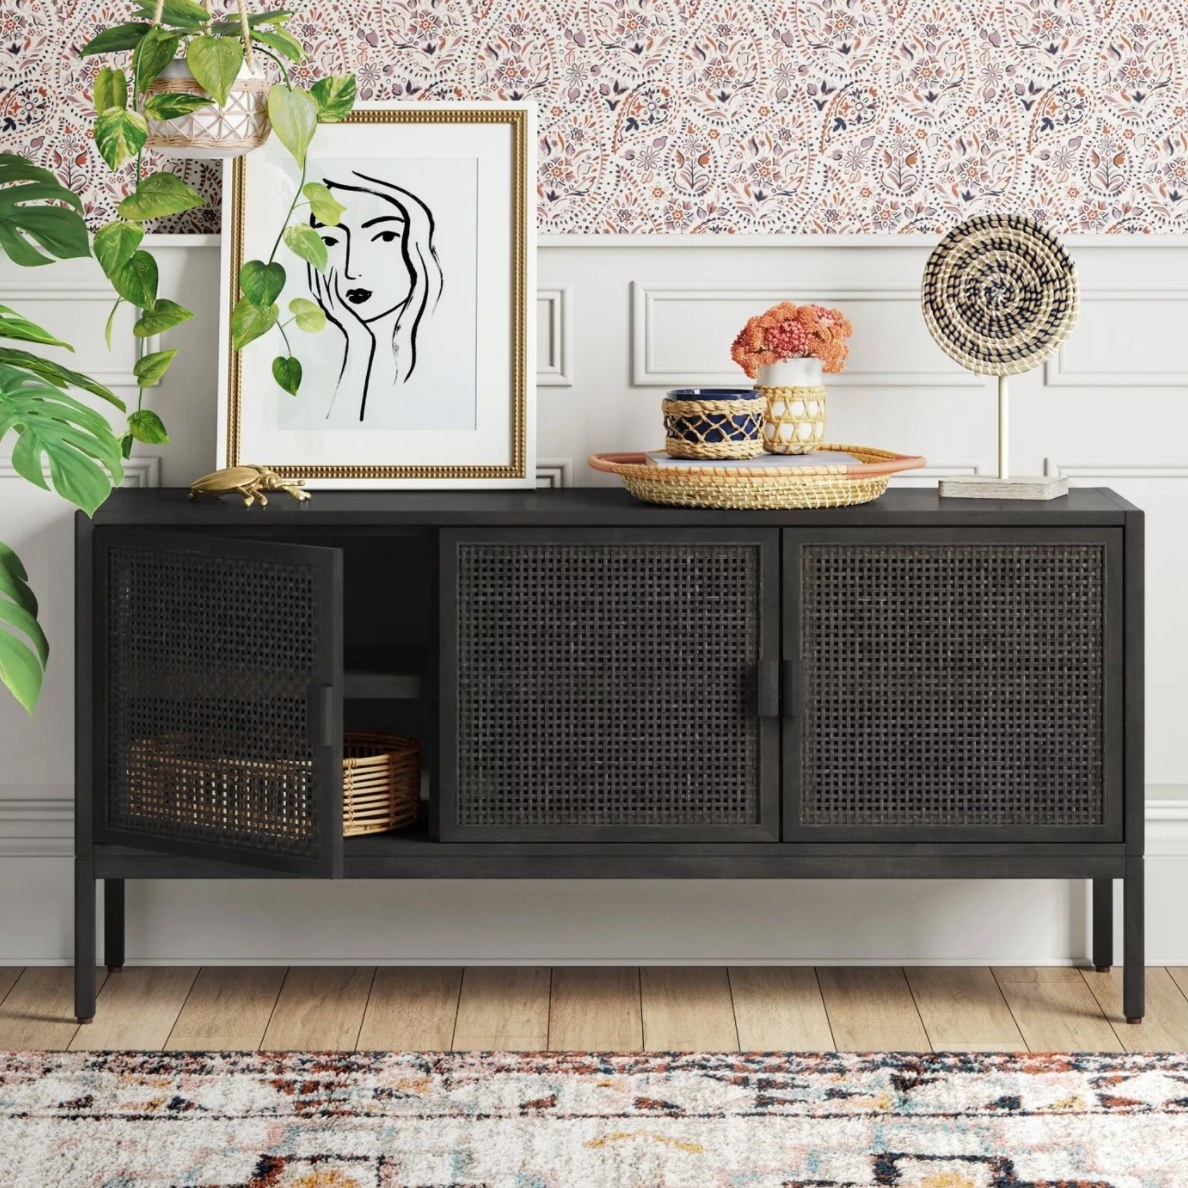 The rattan TV stand in black holding a framed drawing and a wicker basket